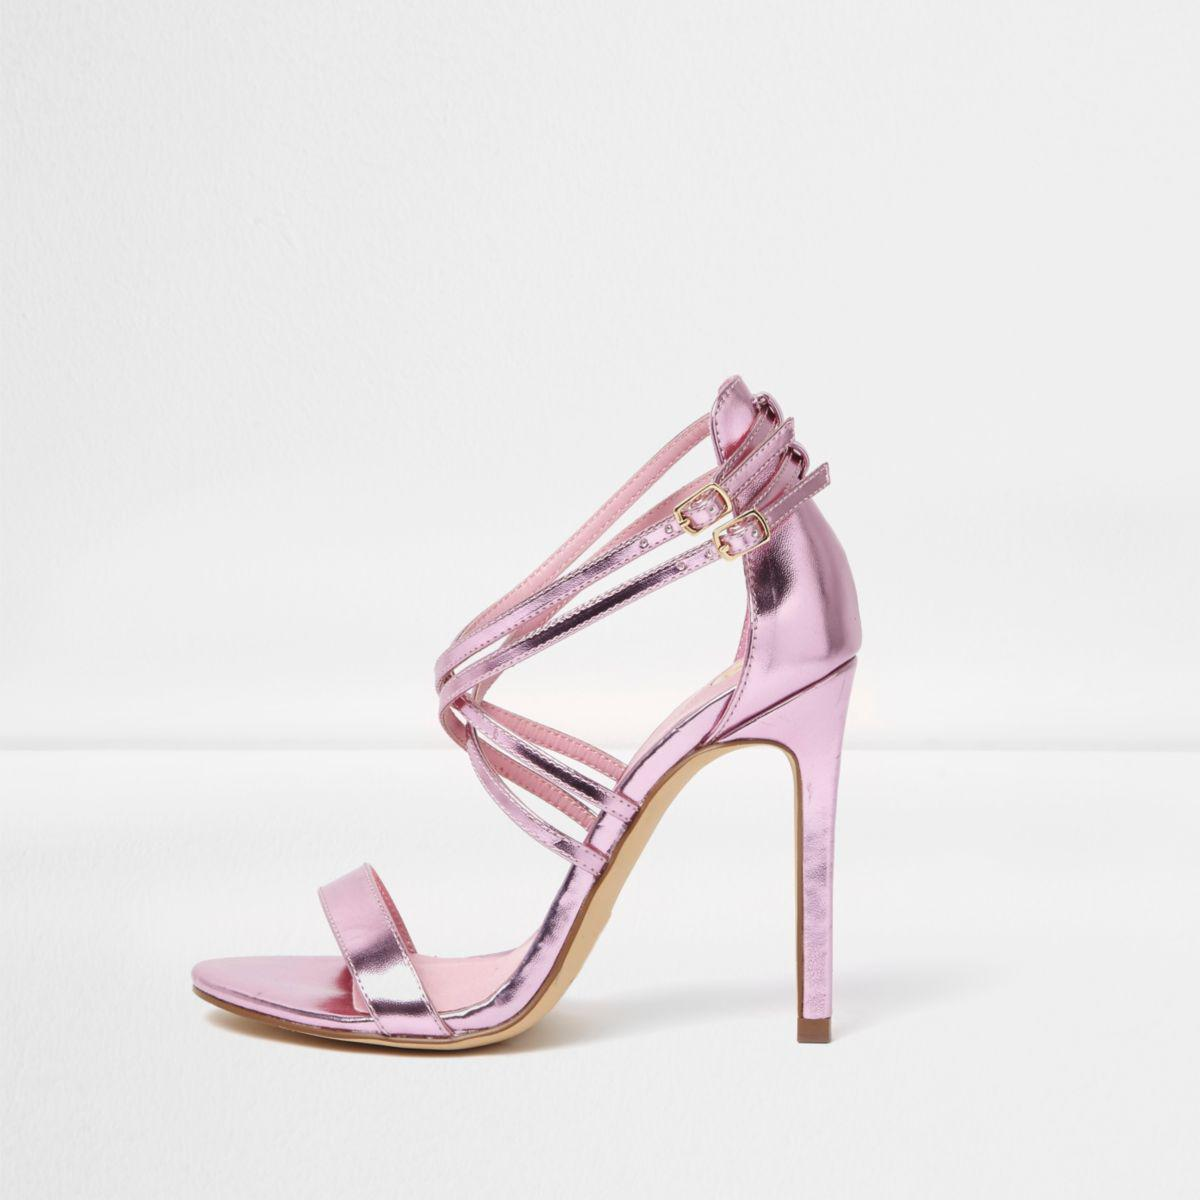 Lyst River Island Pink Metallic Caged Strappy Sandals In